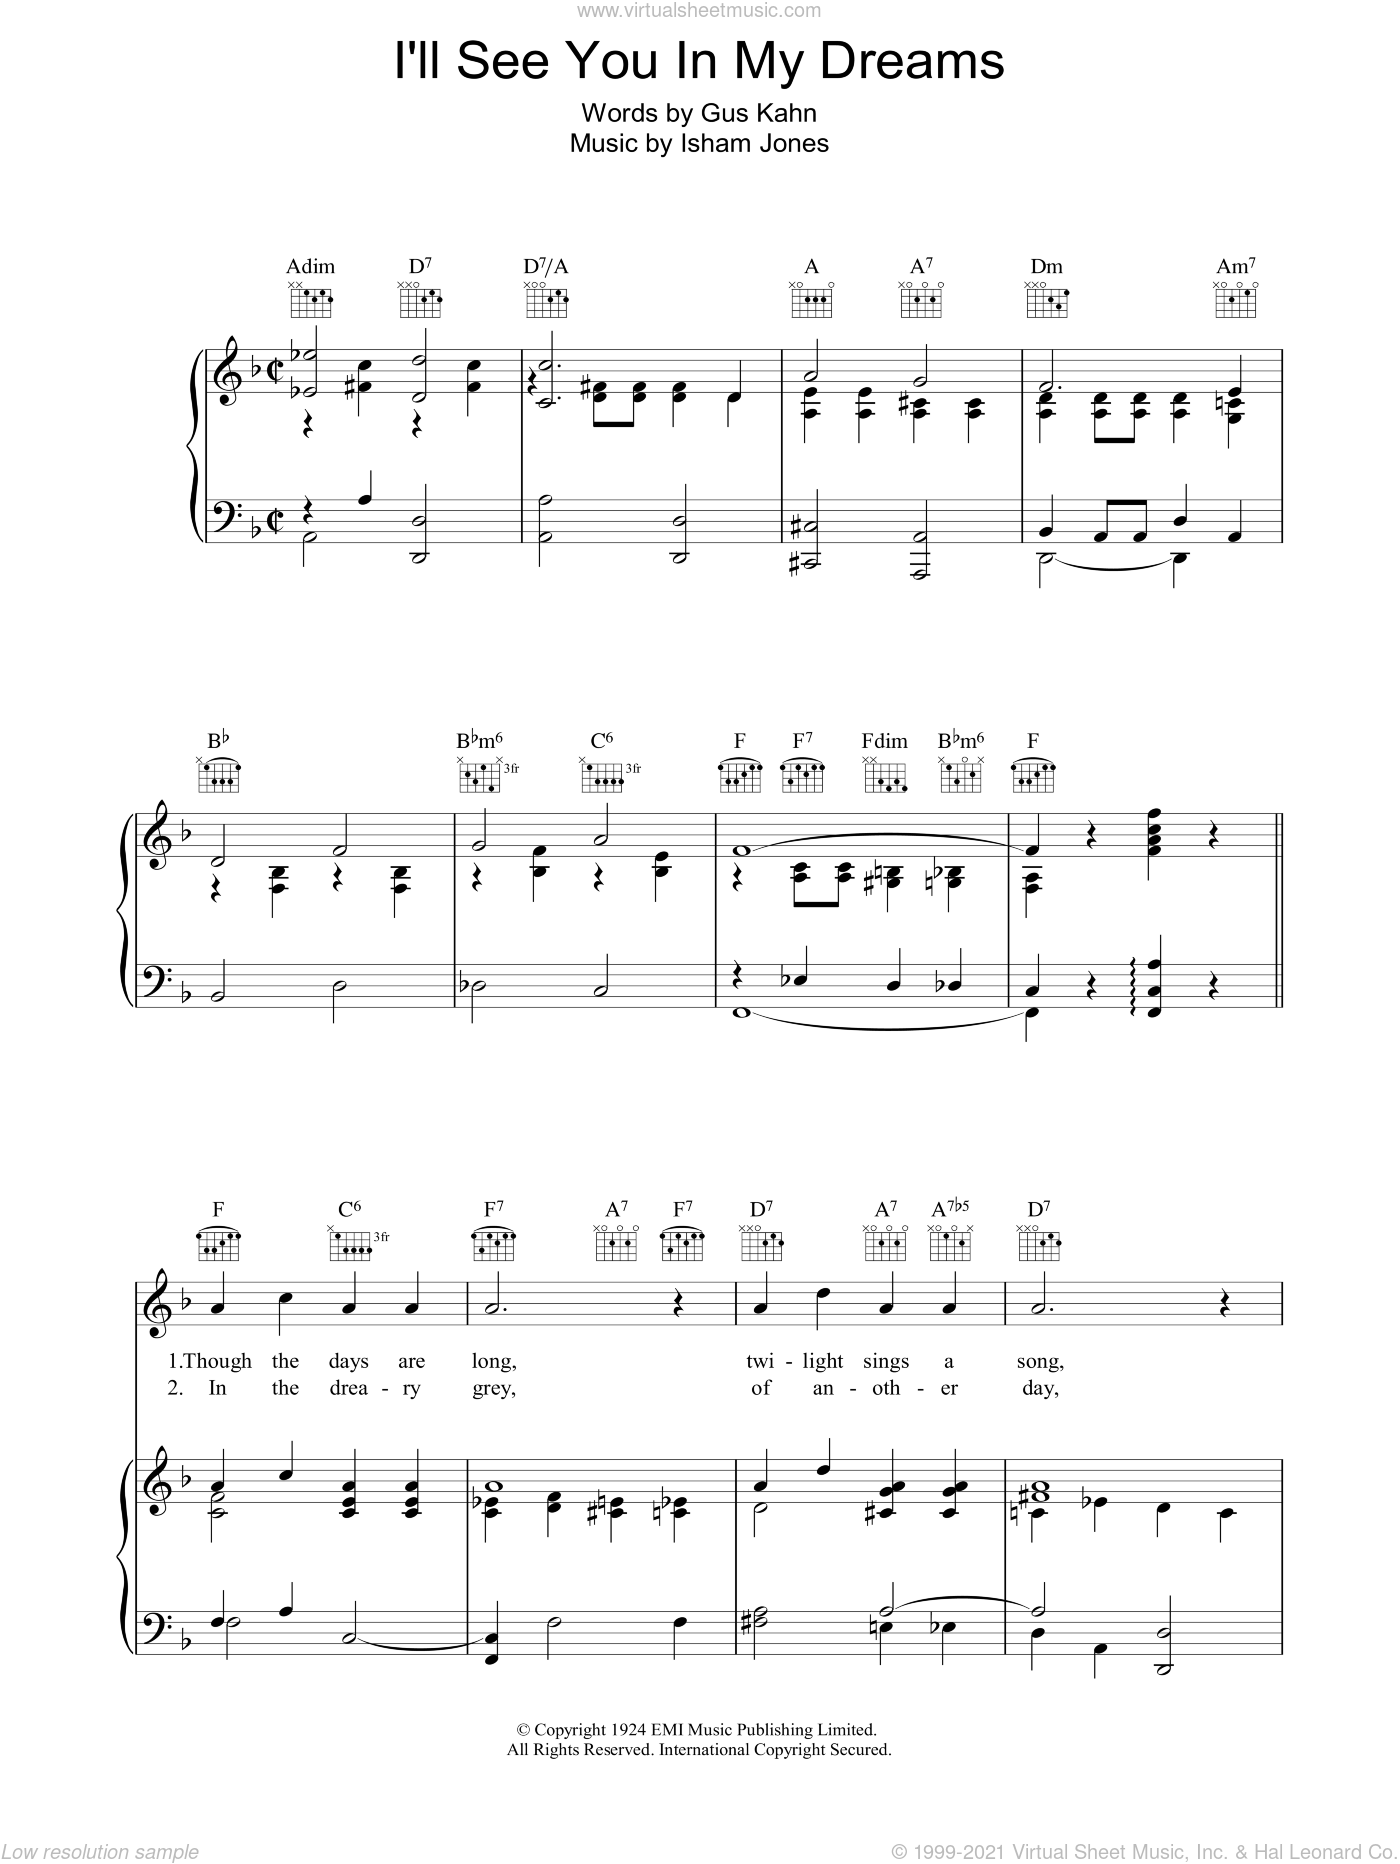 I'll See You In My Dreams sheet music for voice, piano or guitar by Gus Kahn and Isham Jones, intermediate skill level